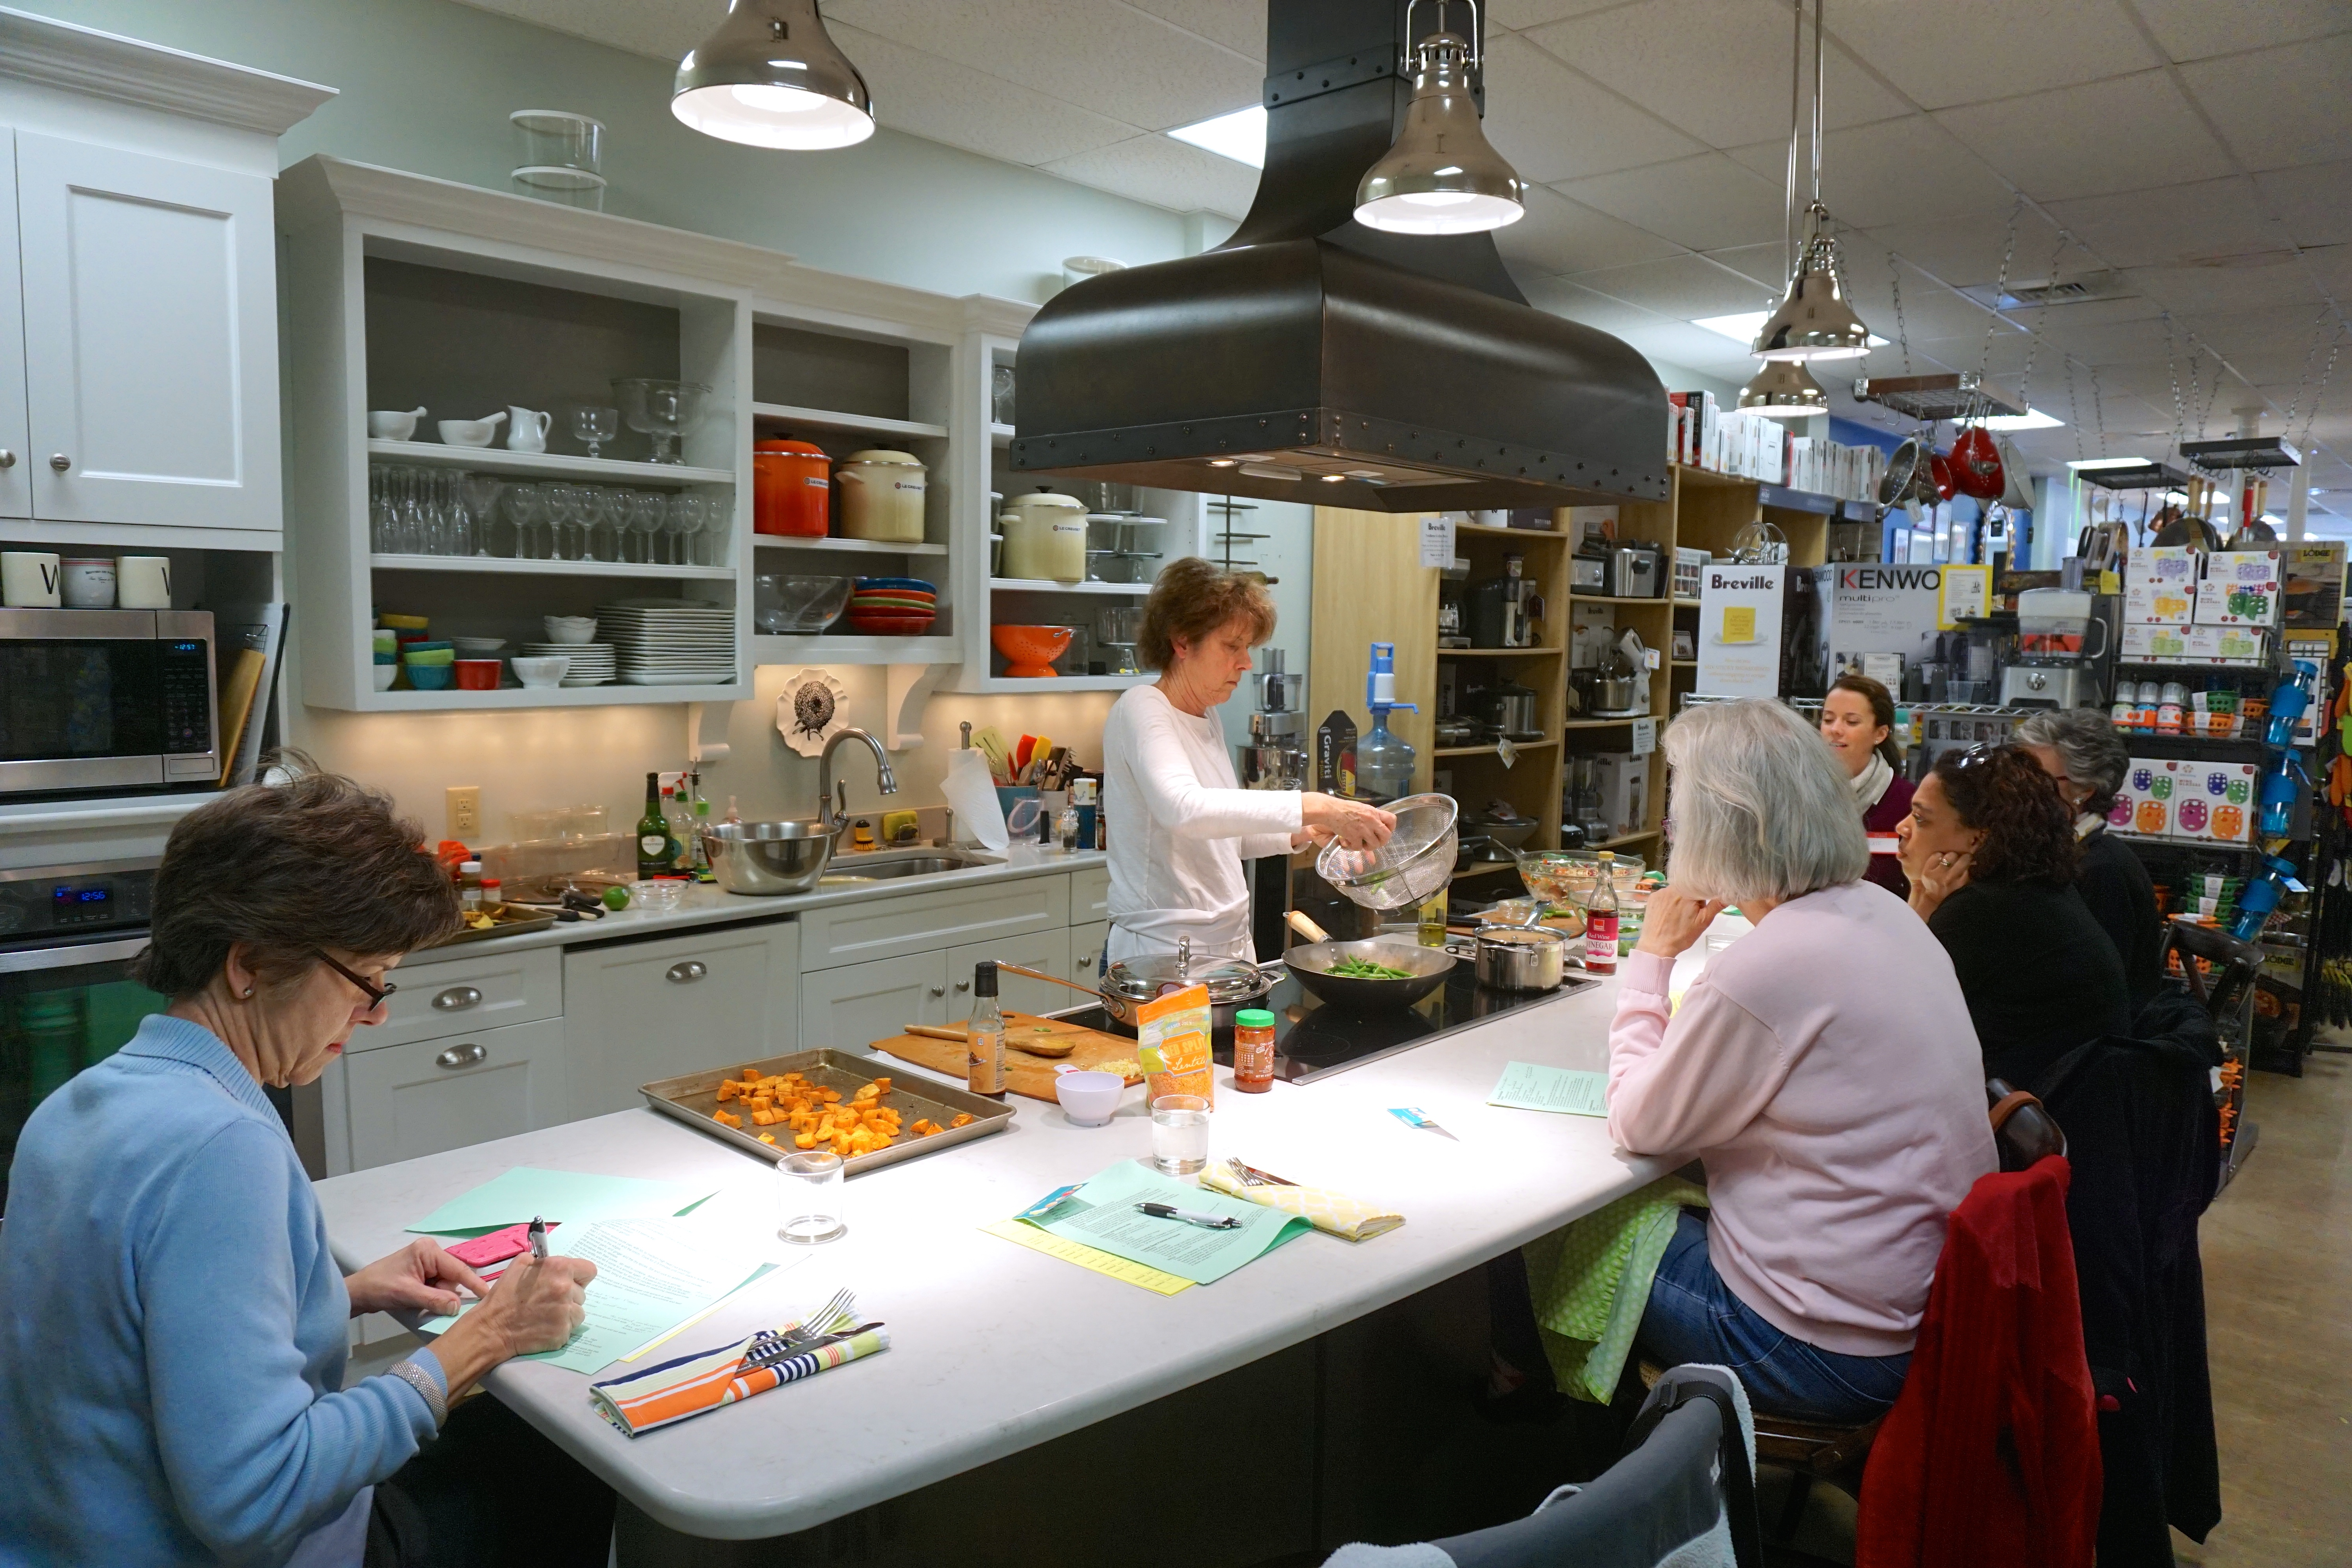 Cooking Classes in Winston-Salem - Daily Dose of Greens